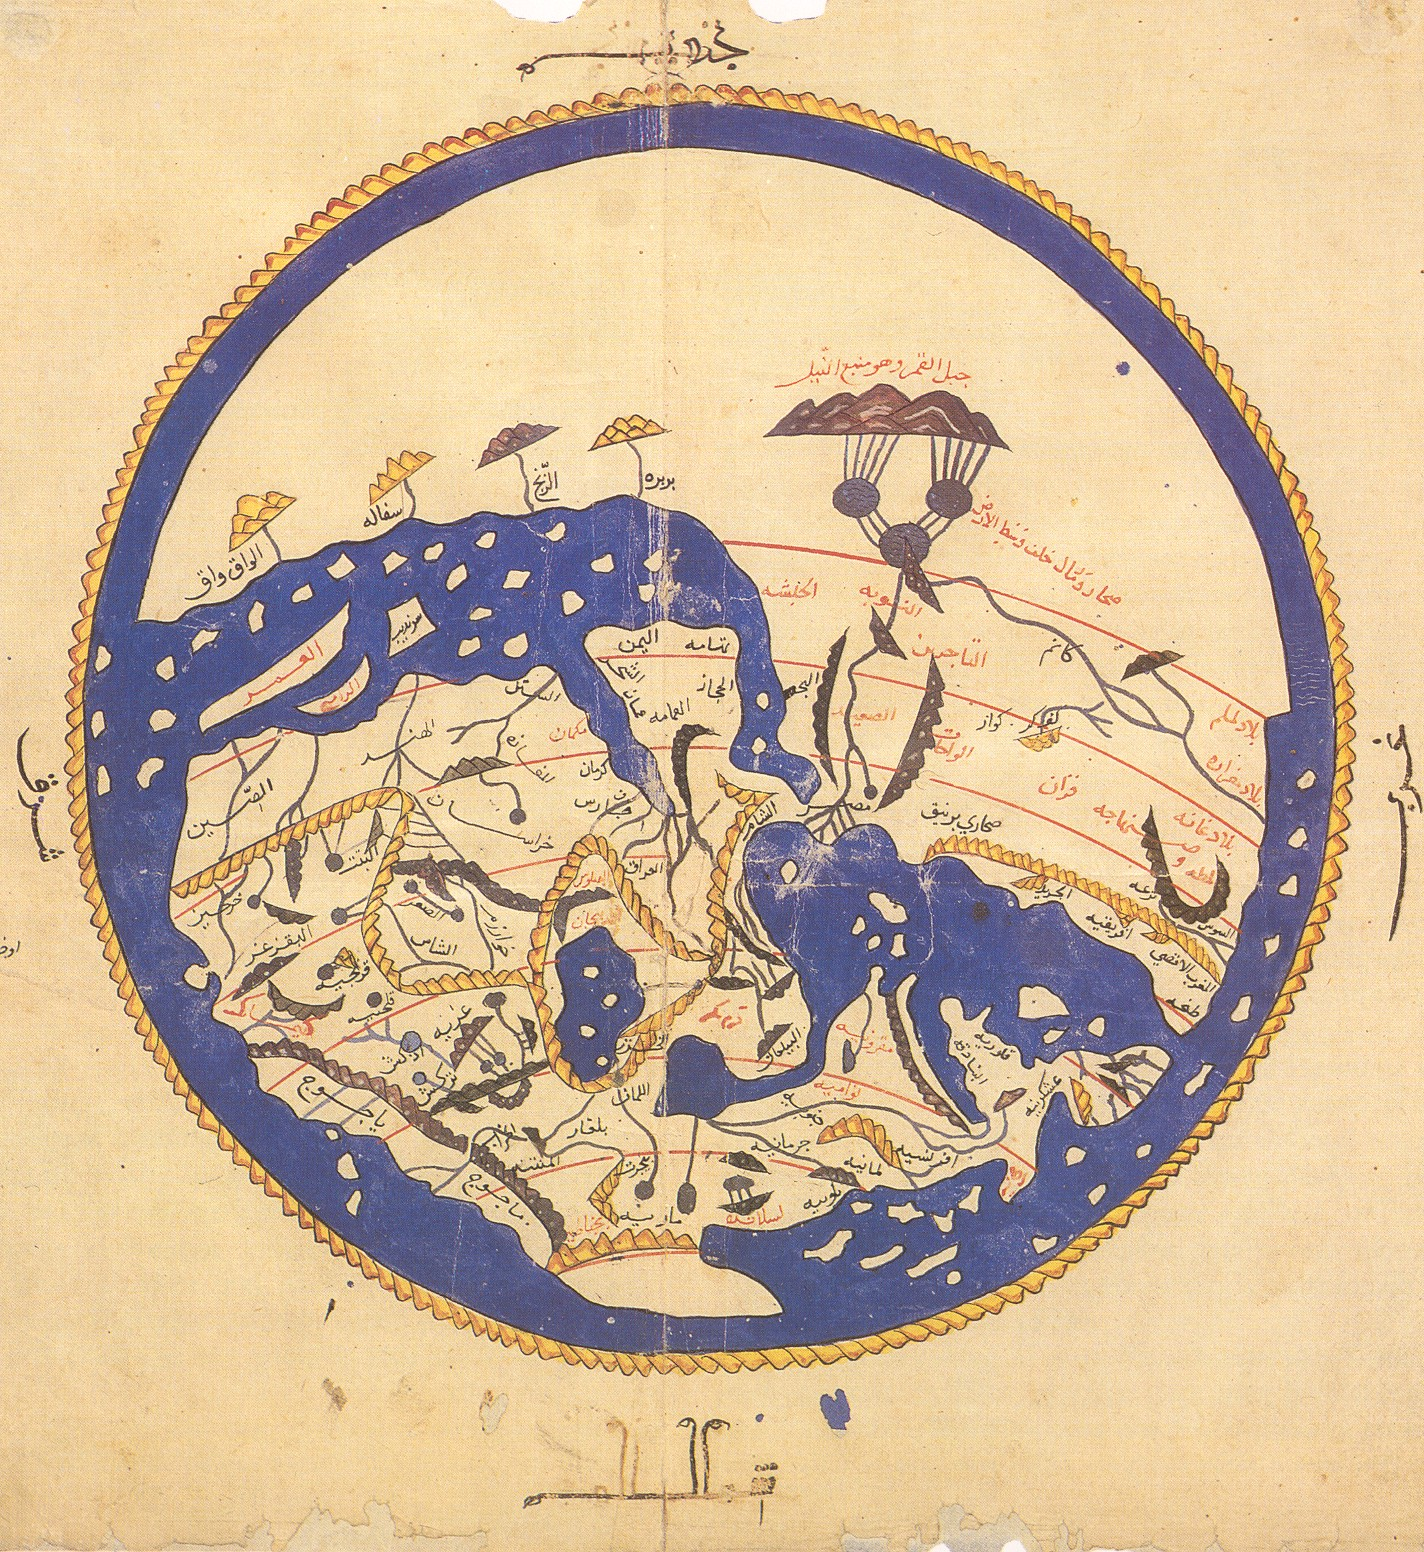 http://upload.wikimedia.org/wikipedia/commons/d/db/Al-Idrisi%27s_world_map.JPG